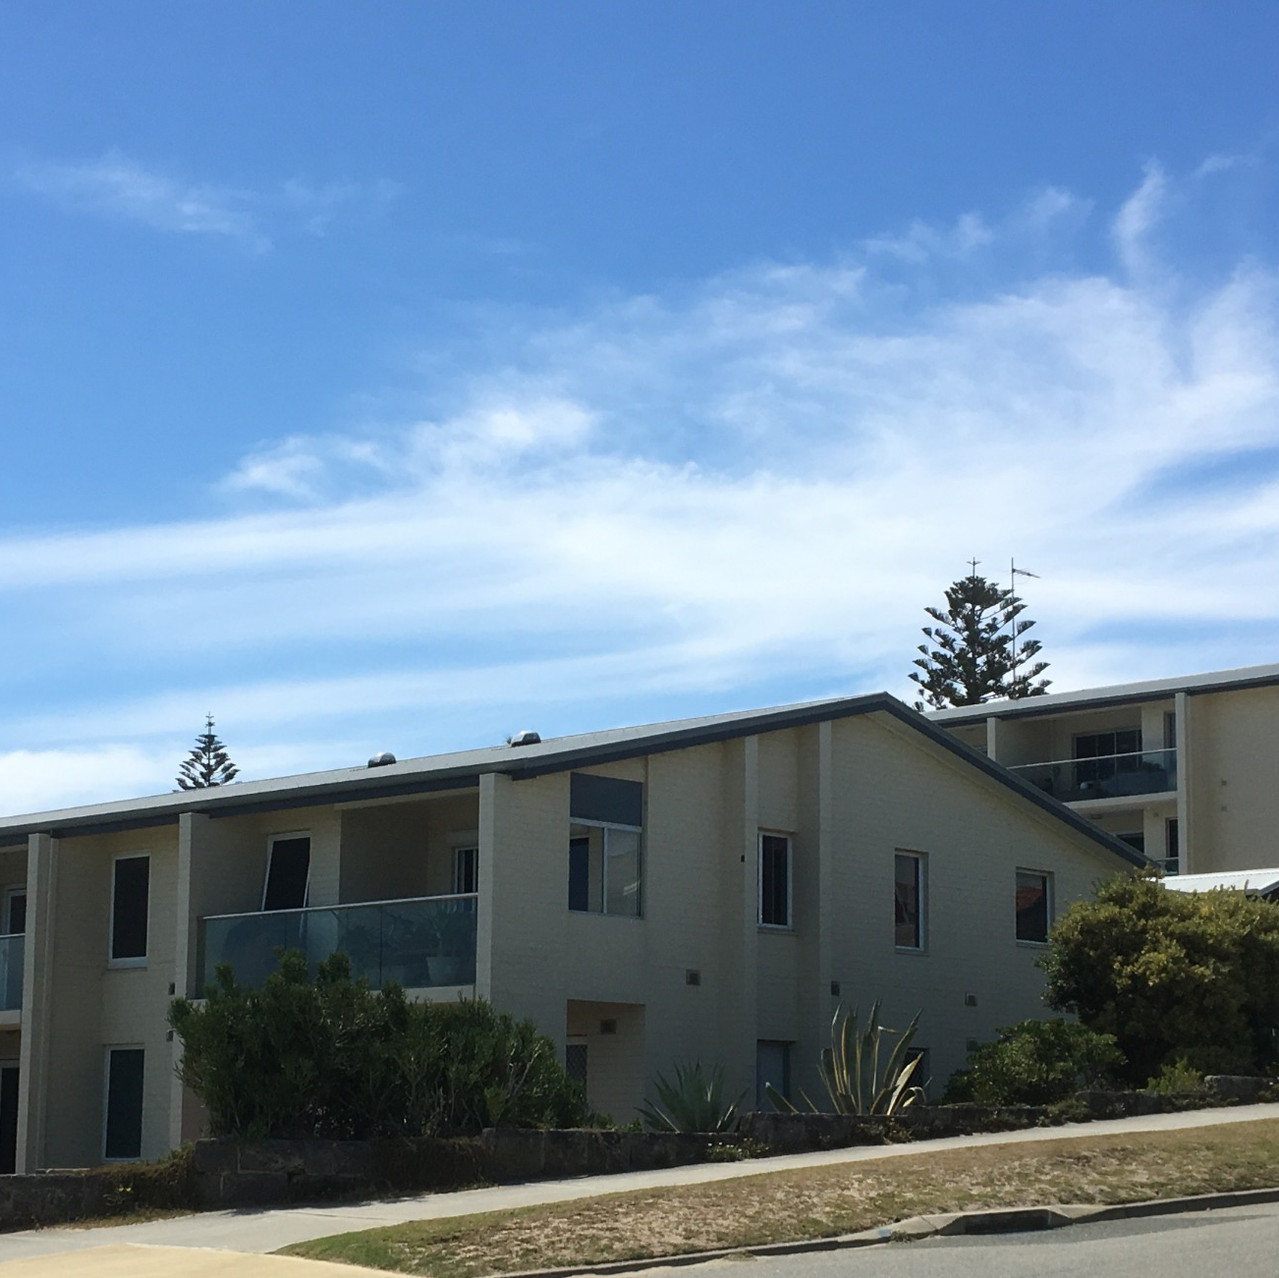 Conspar was engaged to carry out treatment of concrete cancer and install waterproof protective coatings at this strata-managed residential complex overlooking Cottesloe Beach in Perth